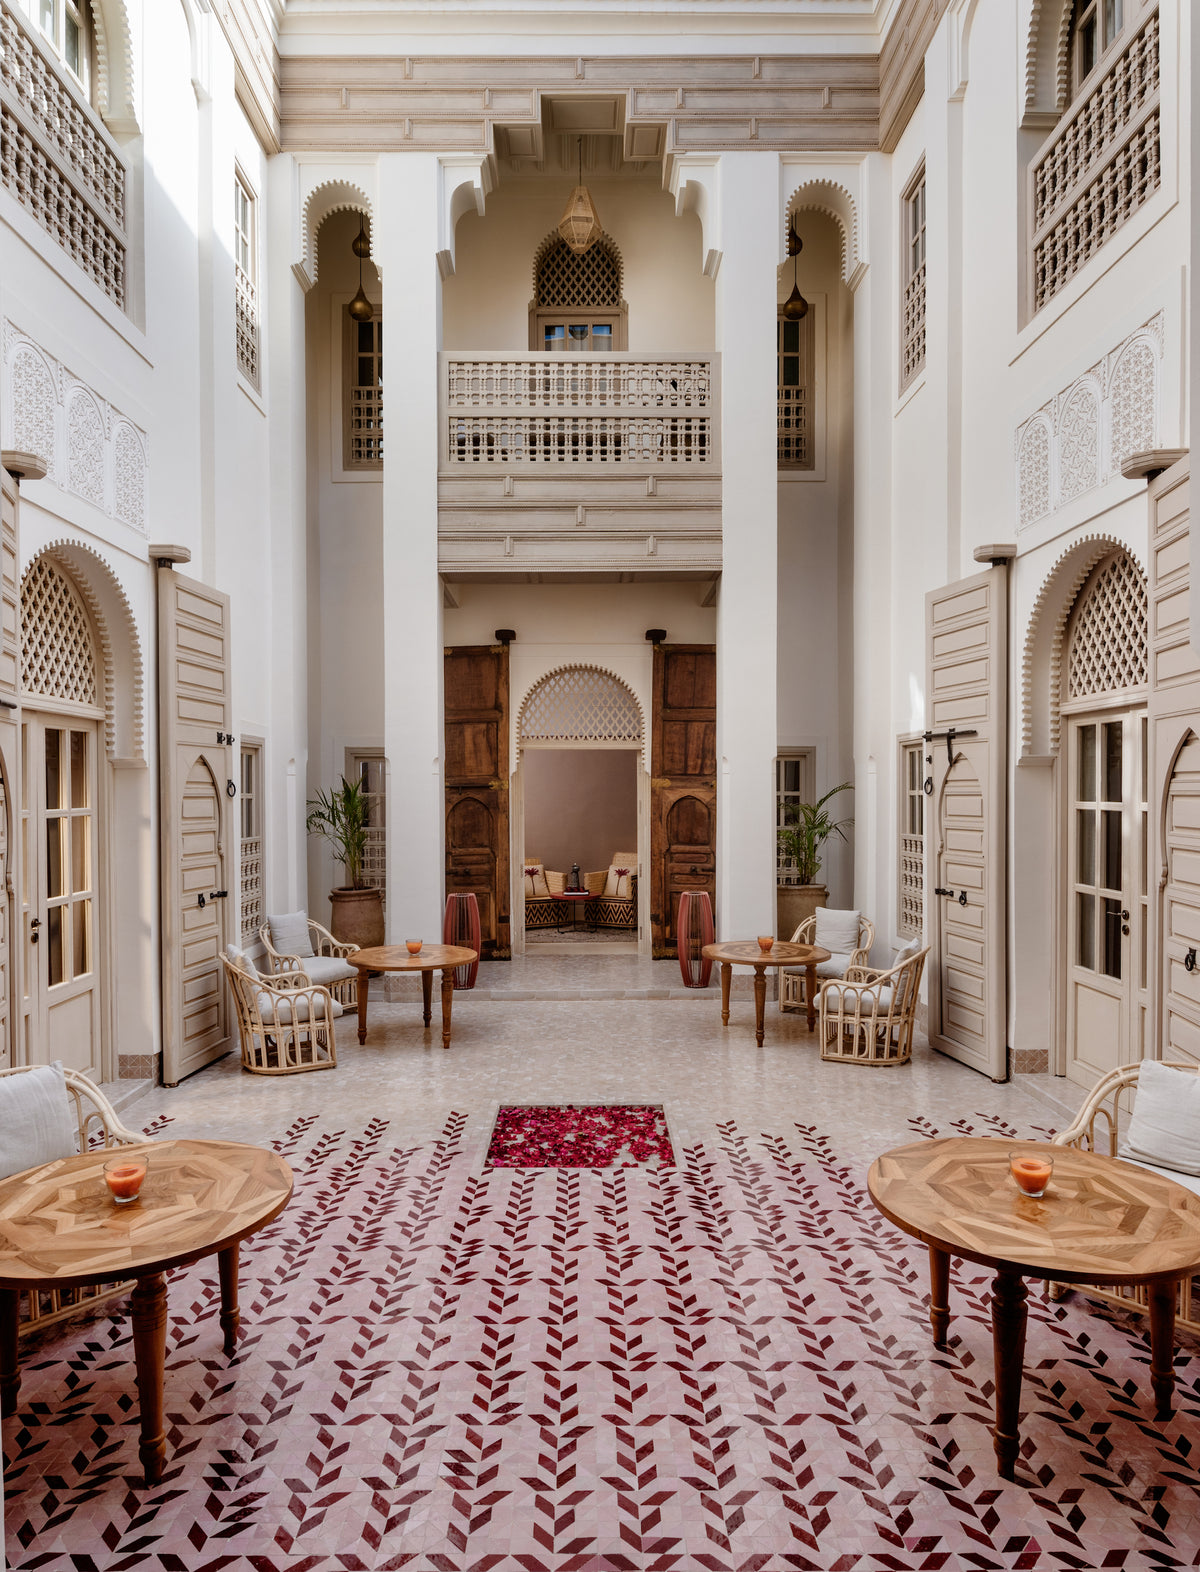 72 Riad, Marrakech, Morocco - Moroccan style hotel lobby with arches and white walls